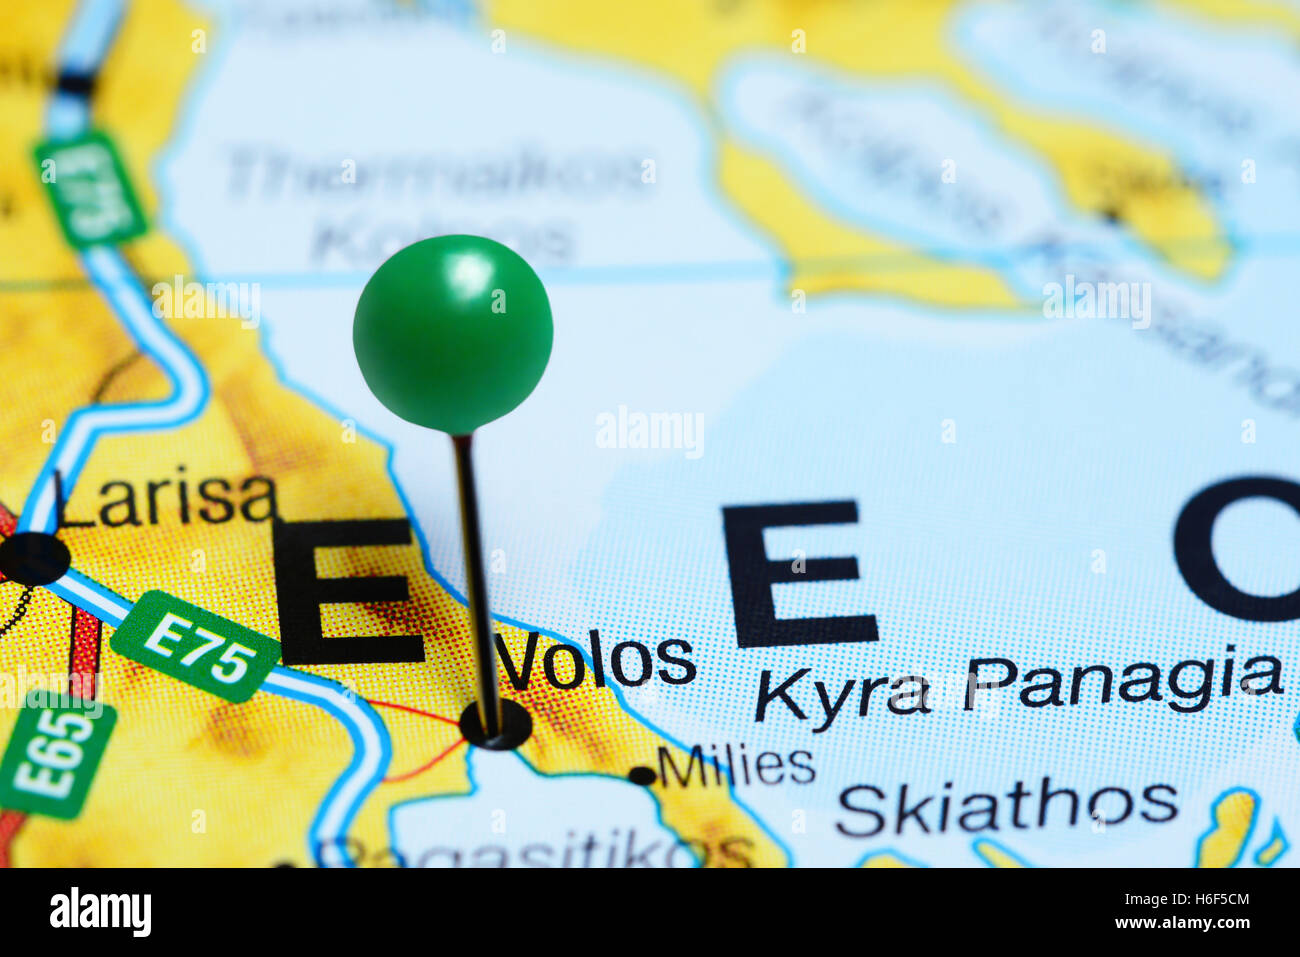 Volos pinned on a map of Greece Stock Photo Royalty Free Image